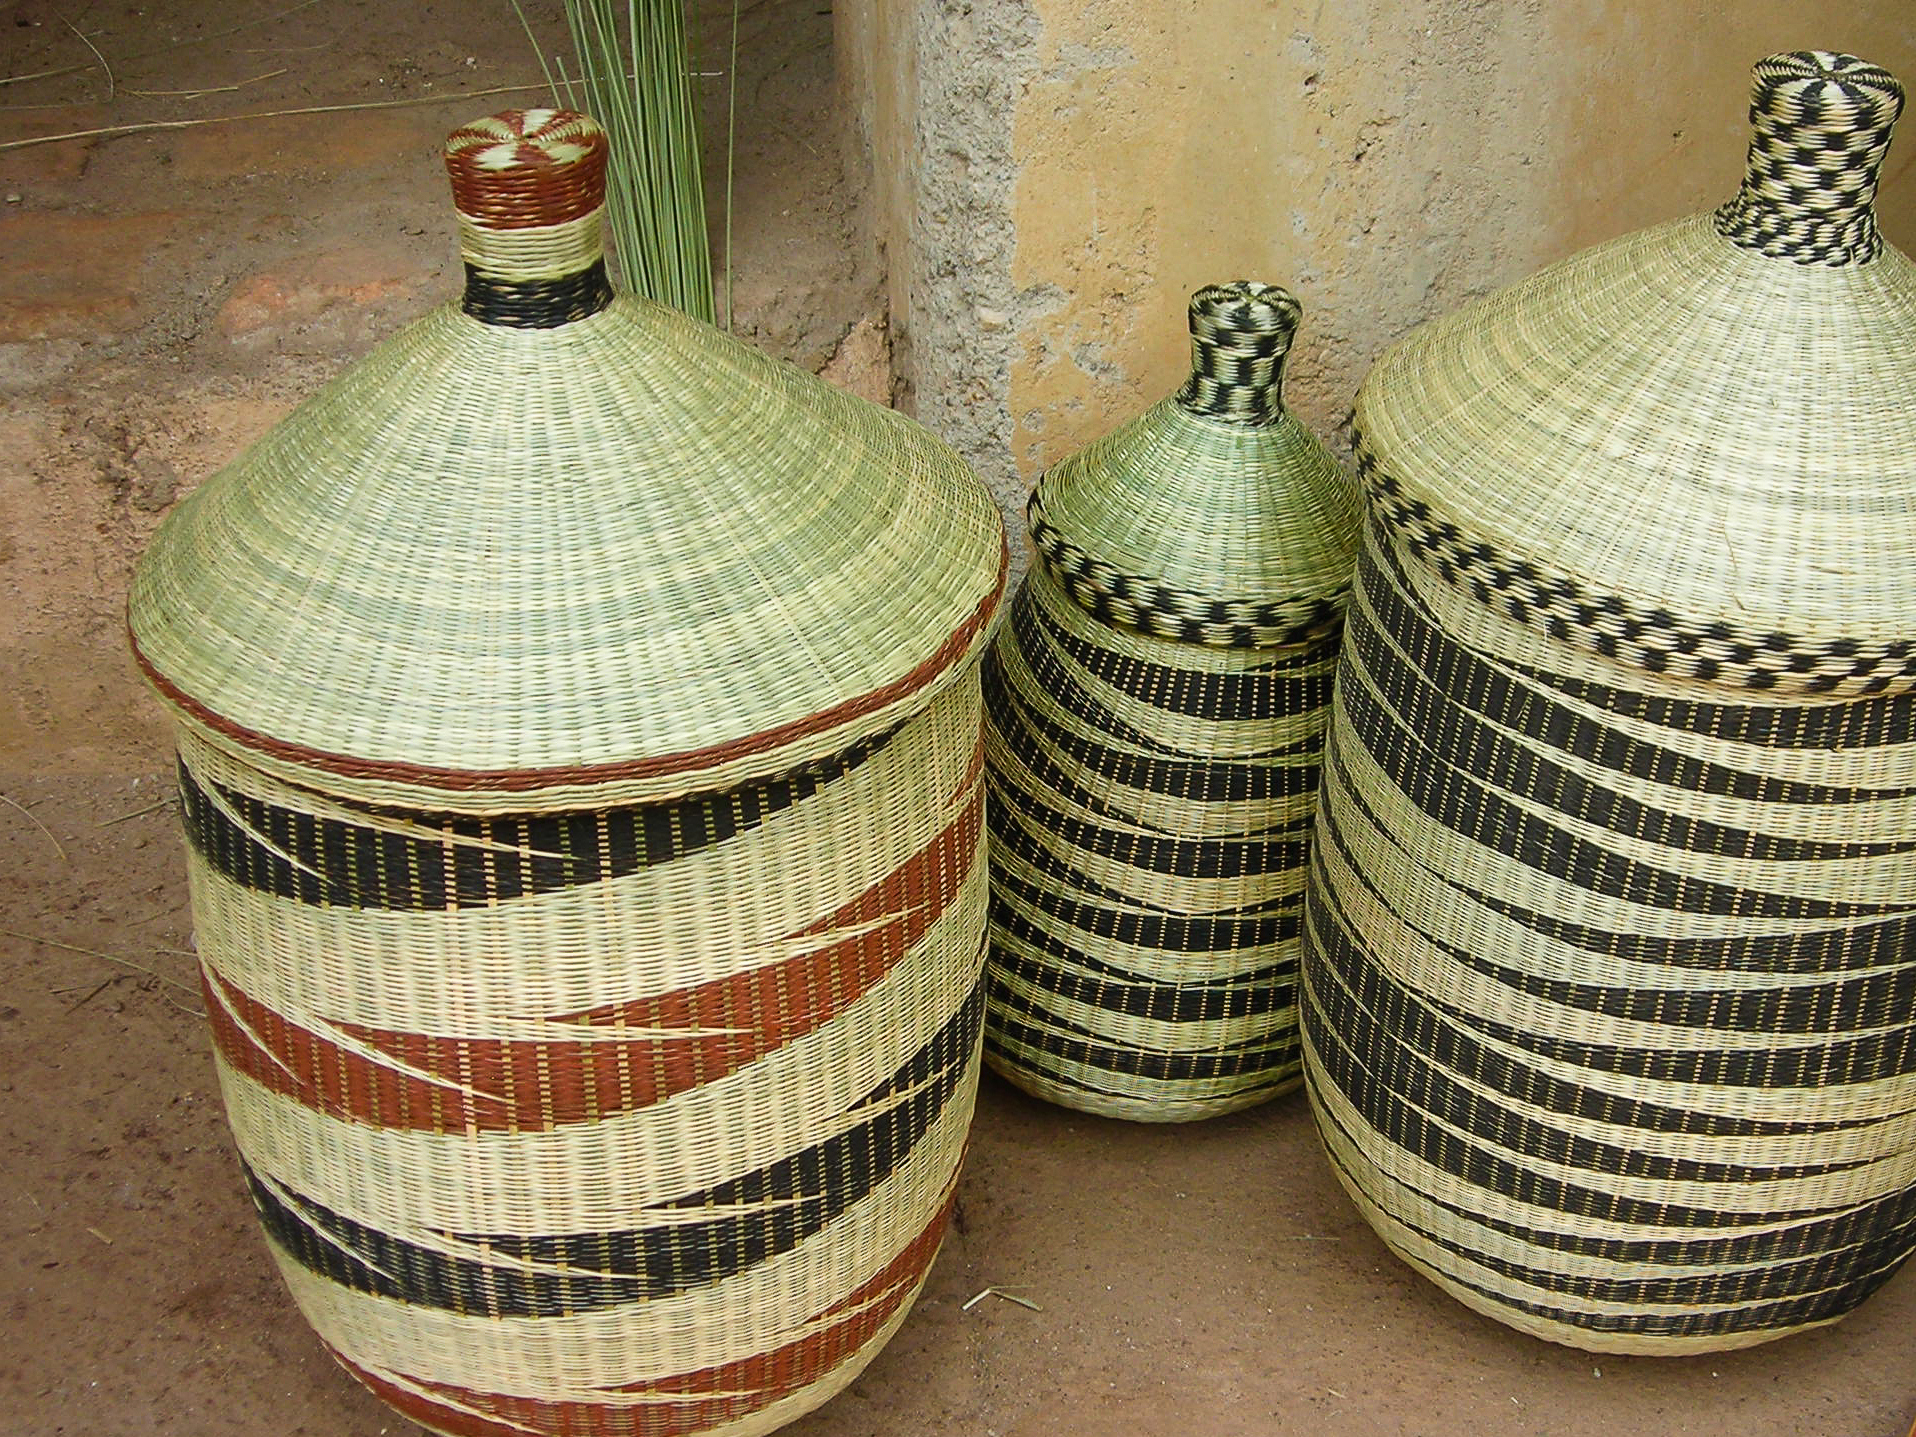 Baskets at the Butare market